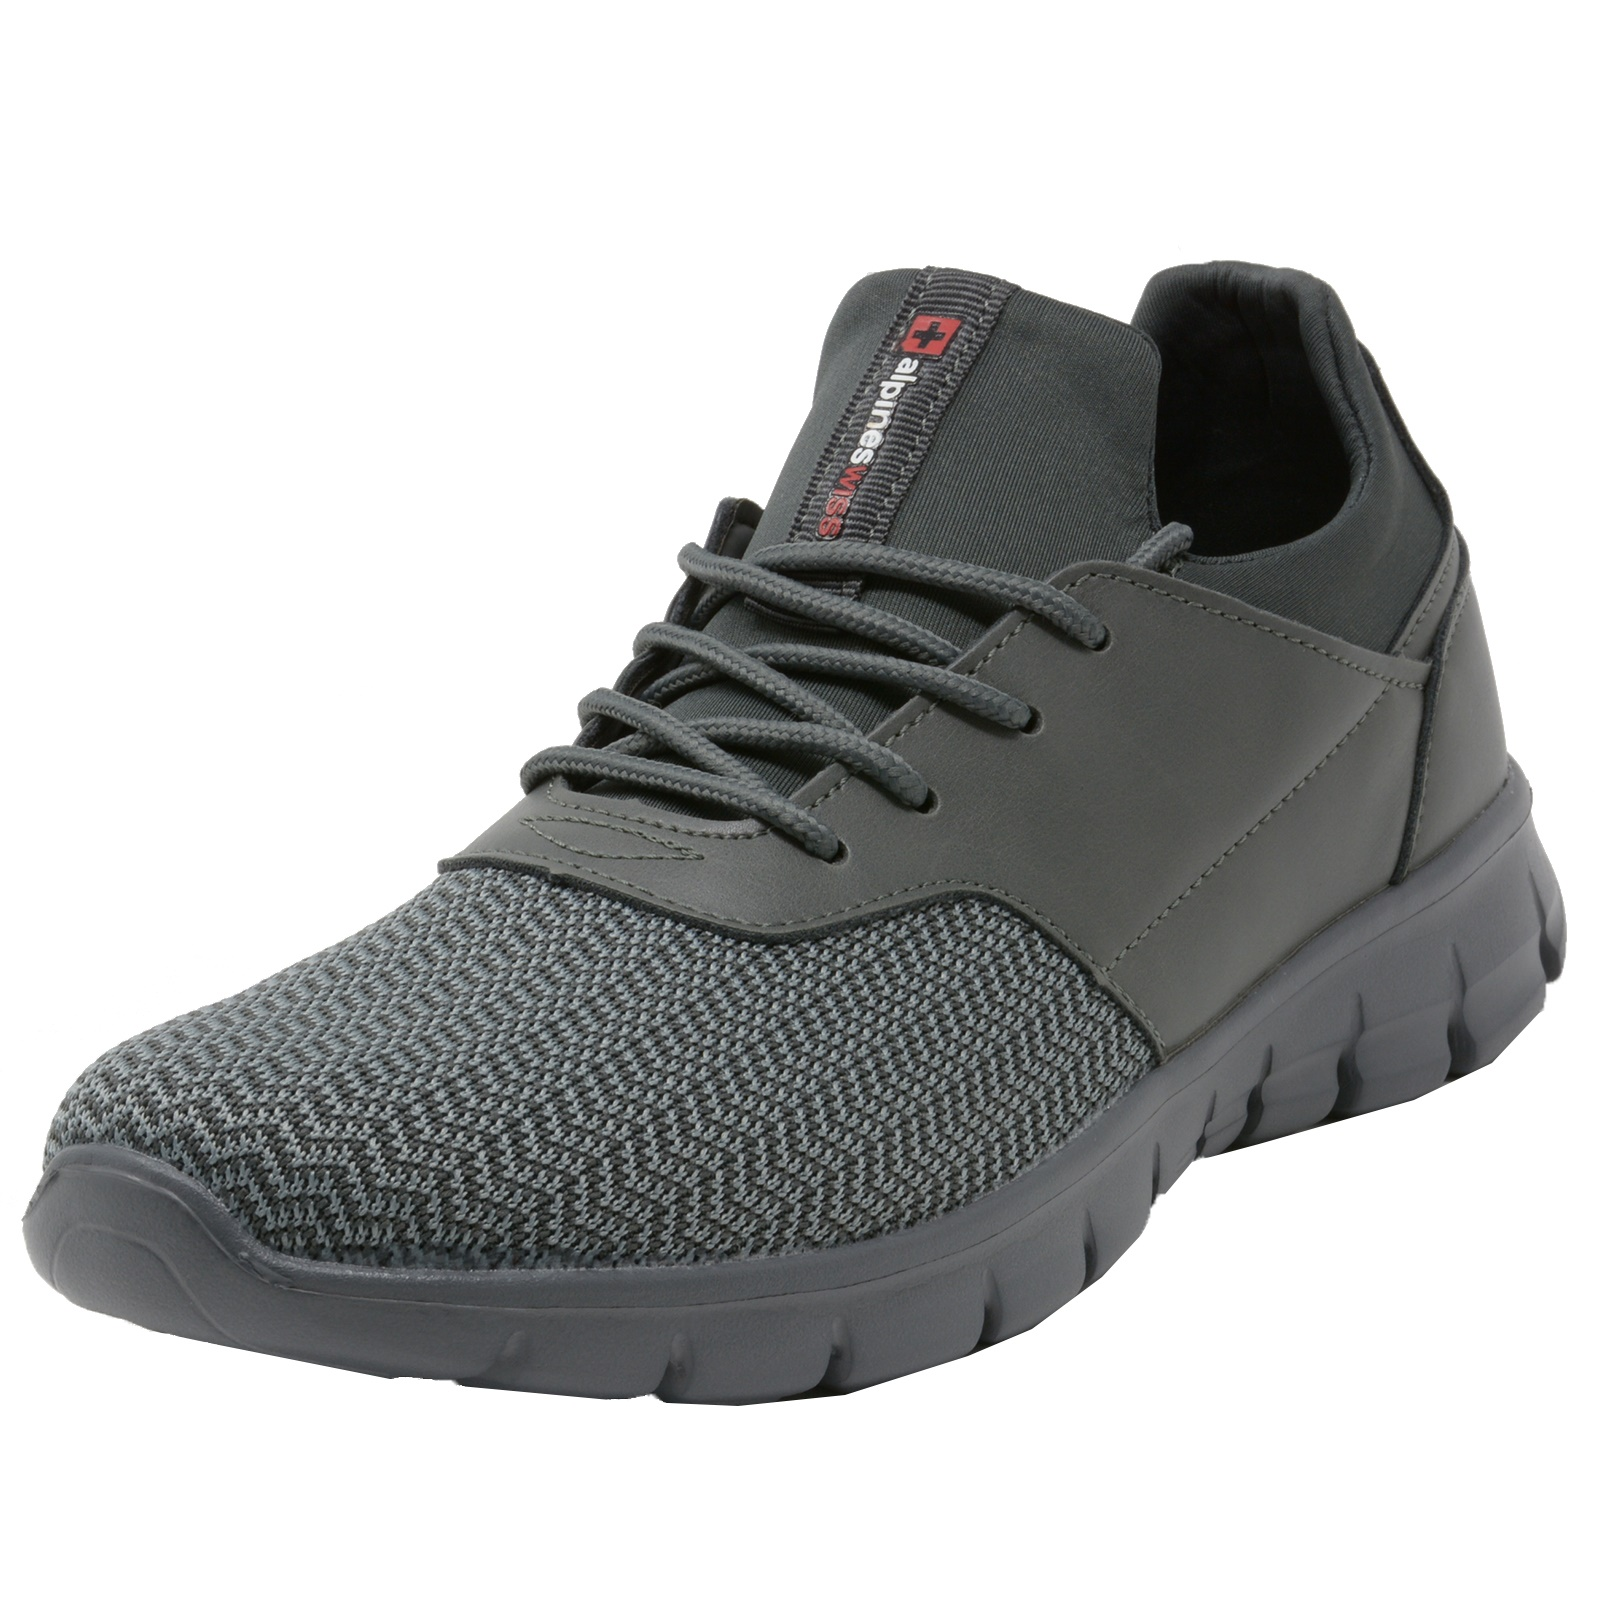 Alpine-Swiss-Leo-Men-Sneakers-Flex-Knit-Tennis-Shoes-Casual-Athletic-Lightweight thumbnail 25